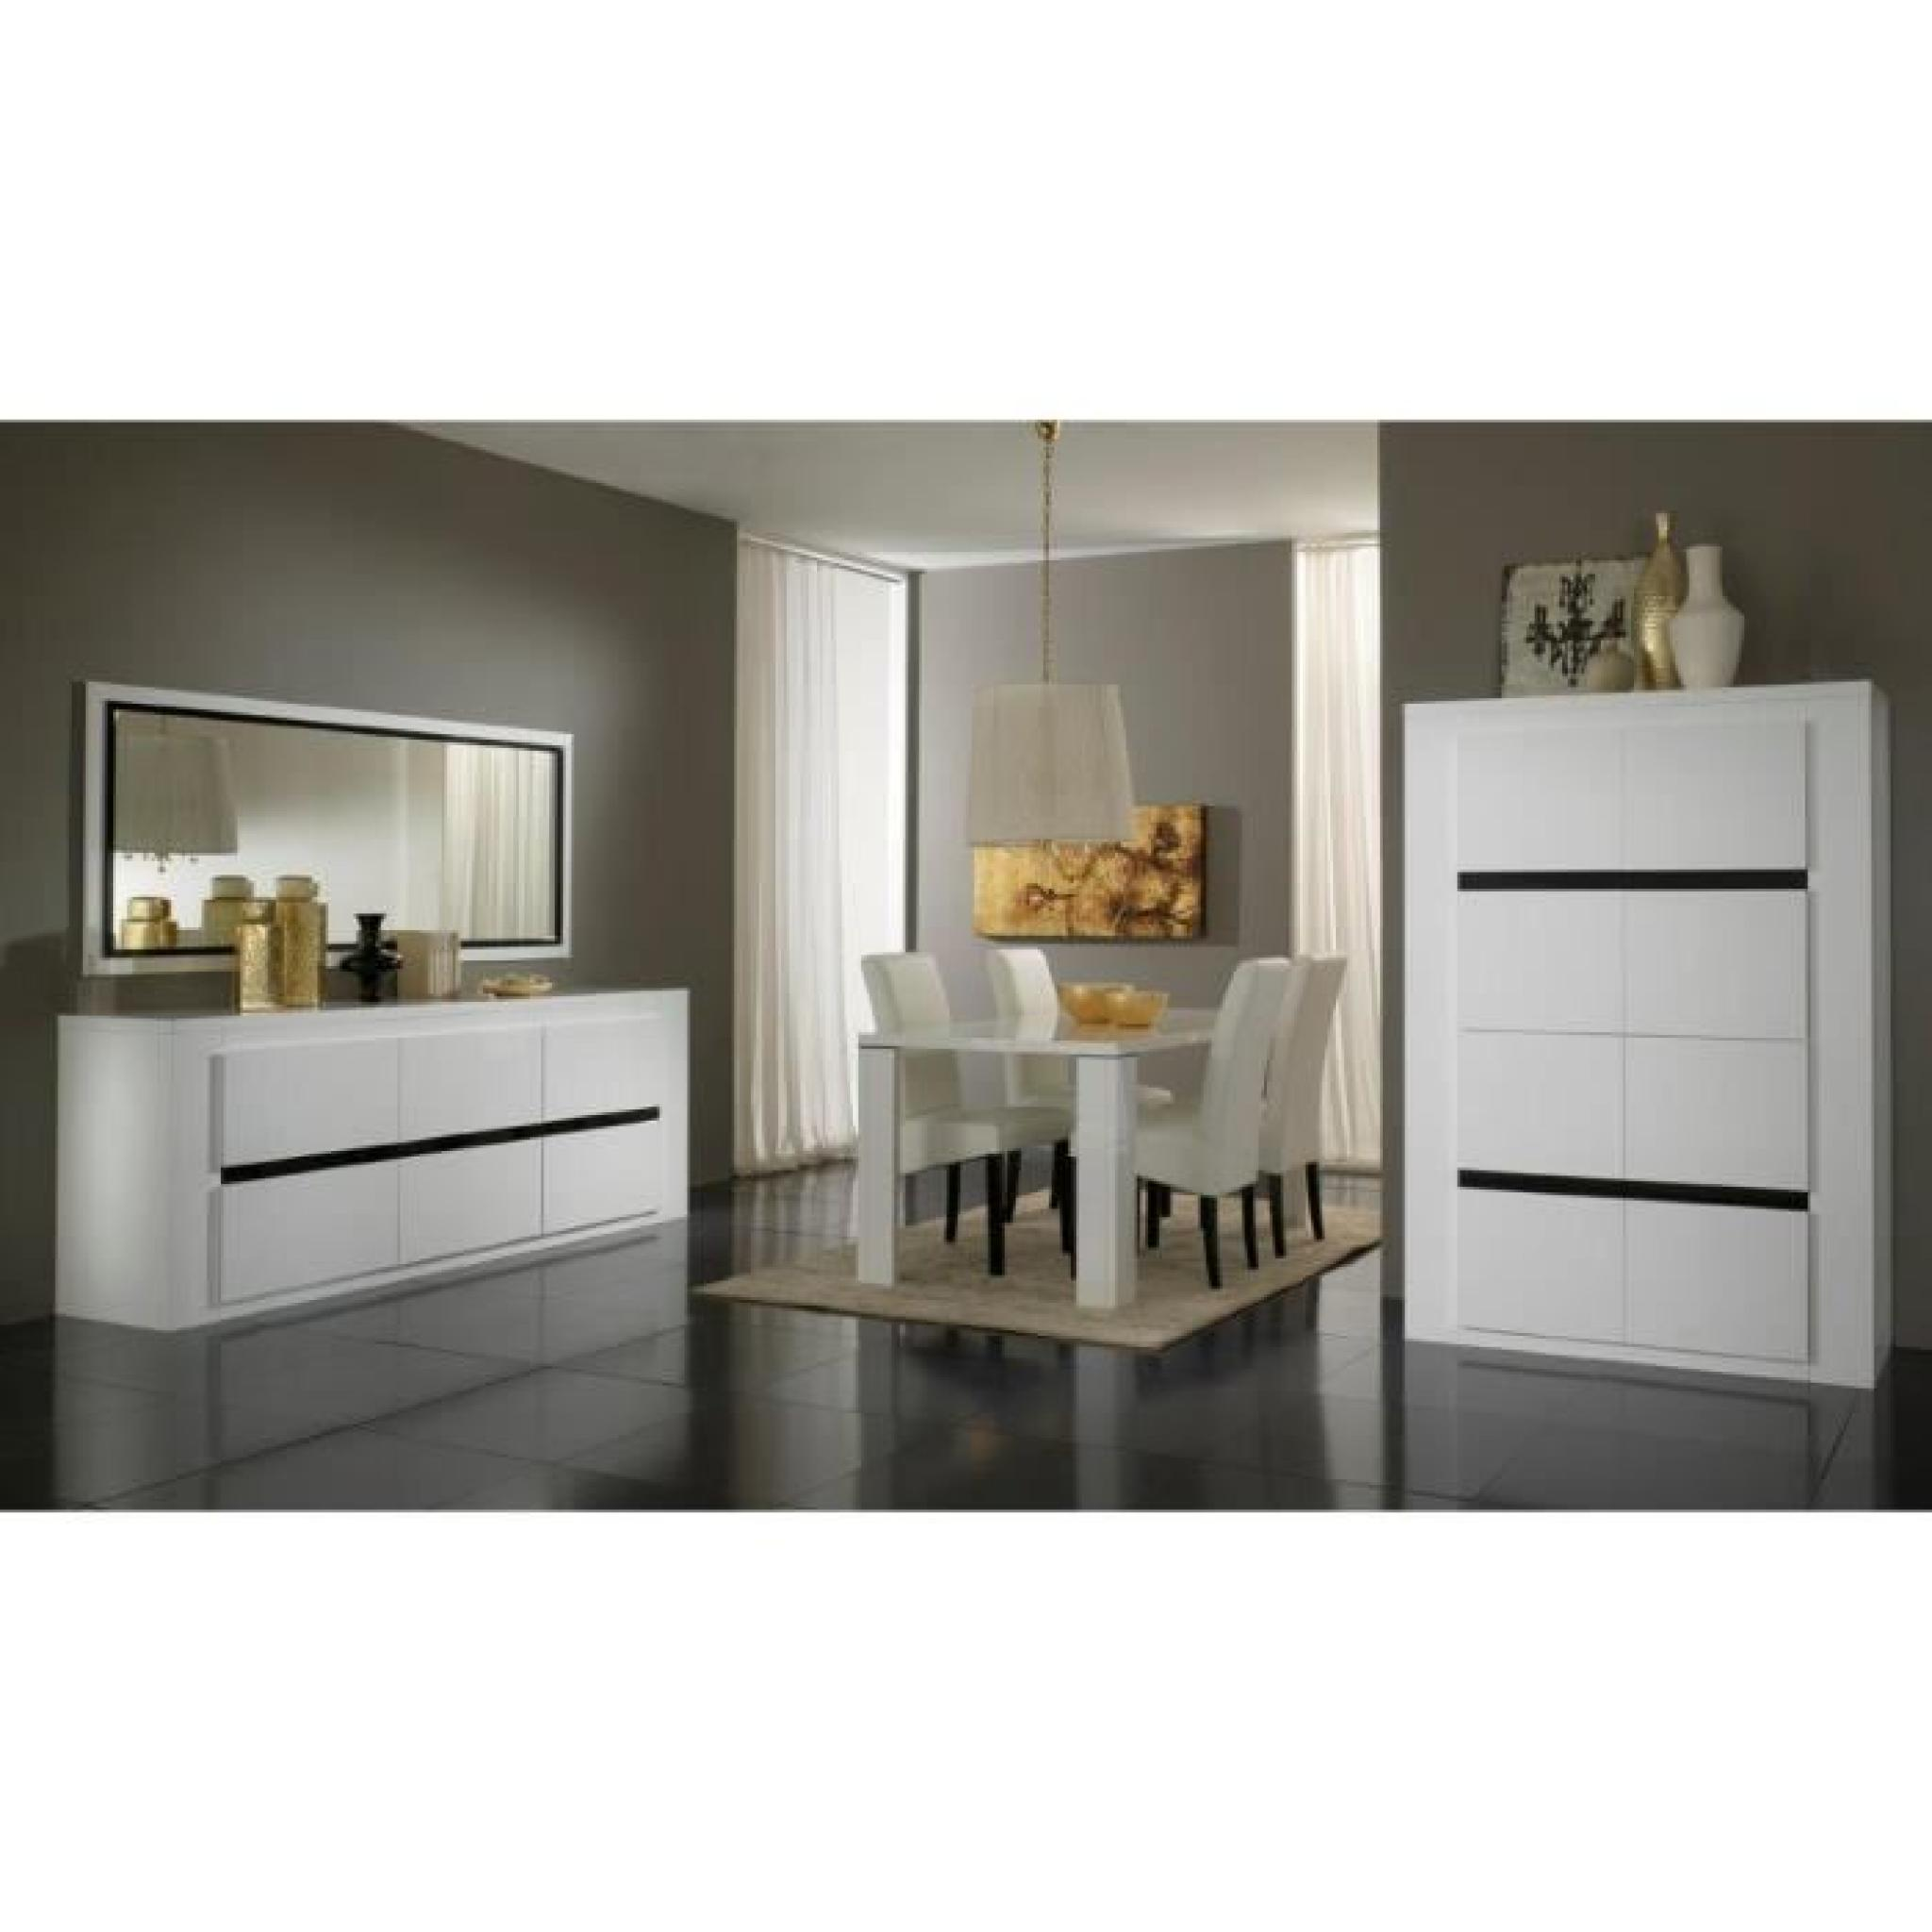 tania metal laque noire blanche ensemble complet salle a manger vitrines 2 portes bahut. Black Bedroom Furniture Sets. Home Design Ideas